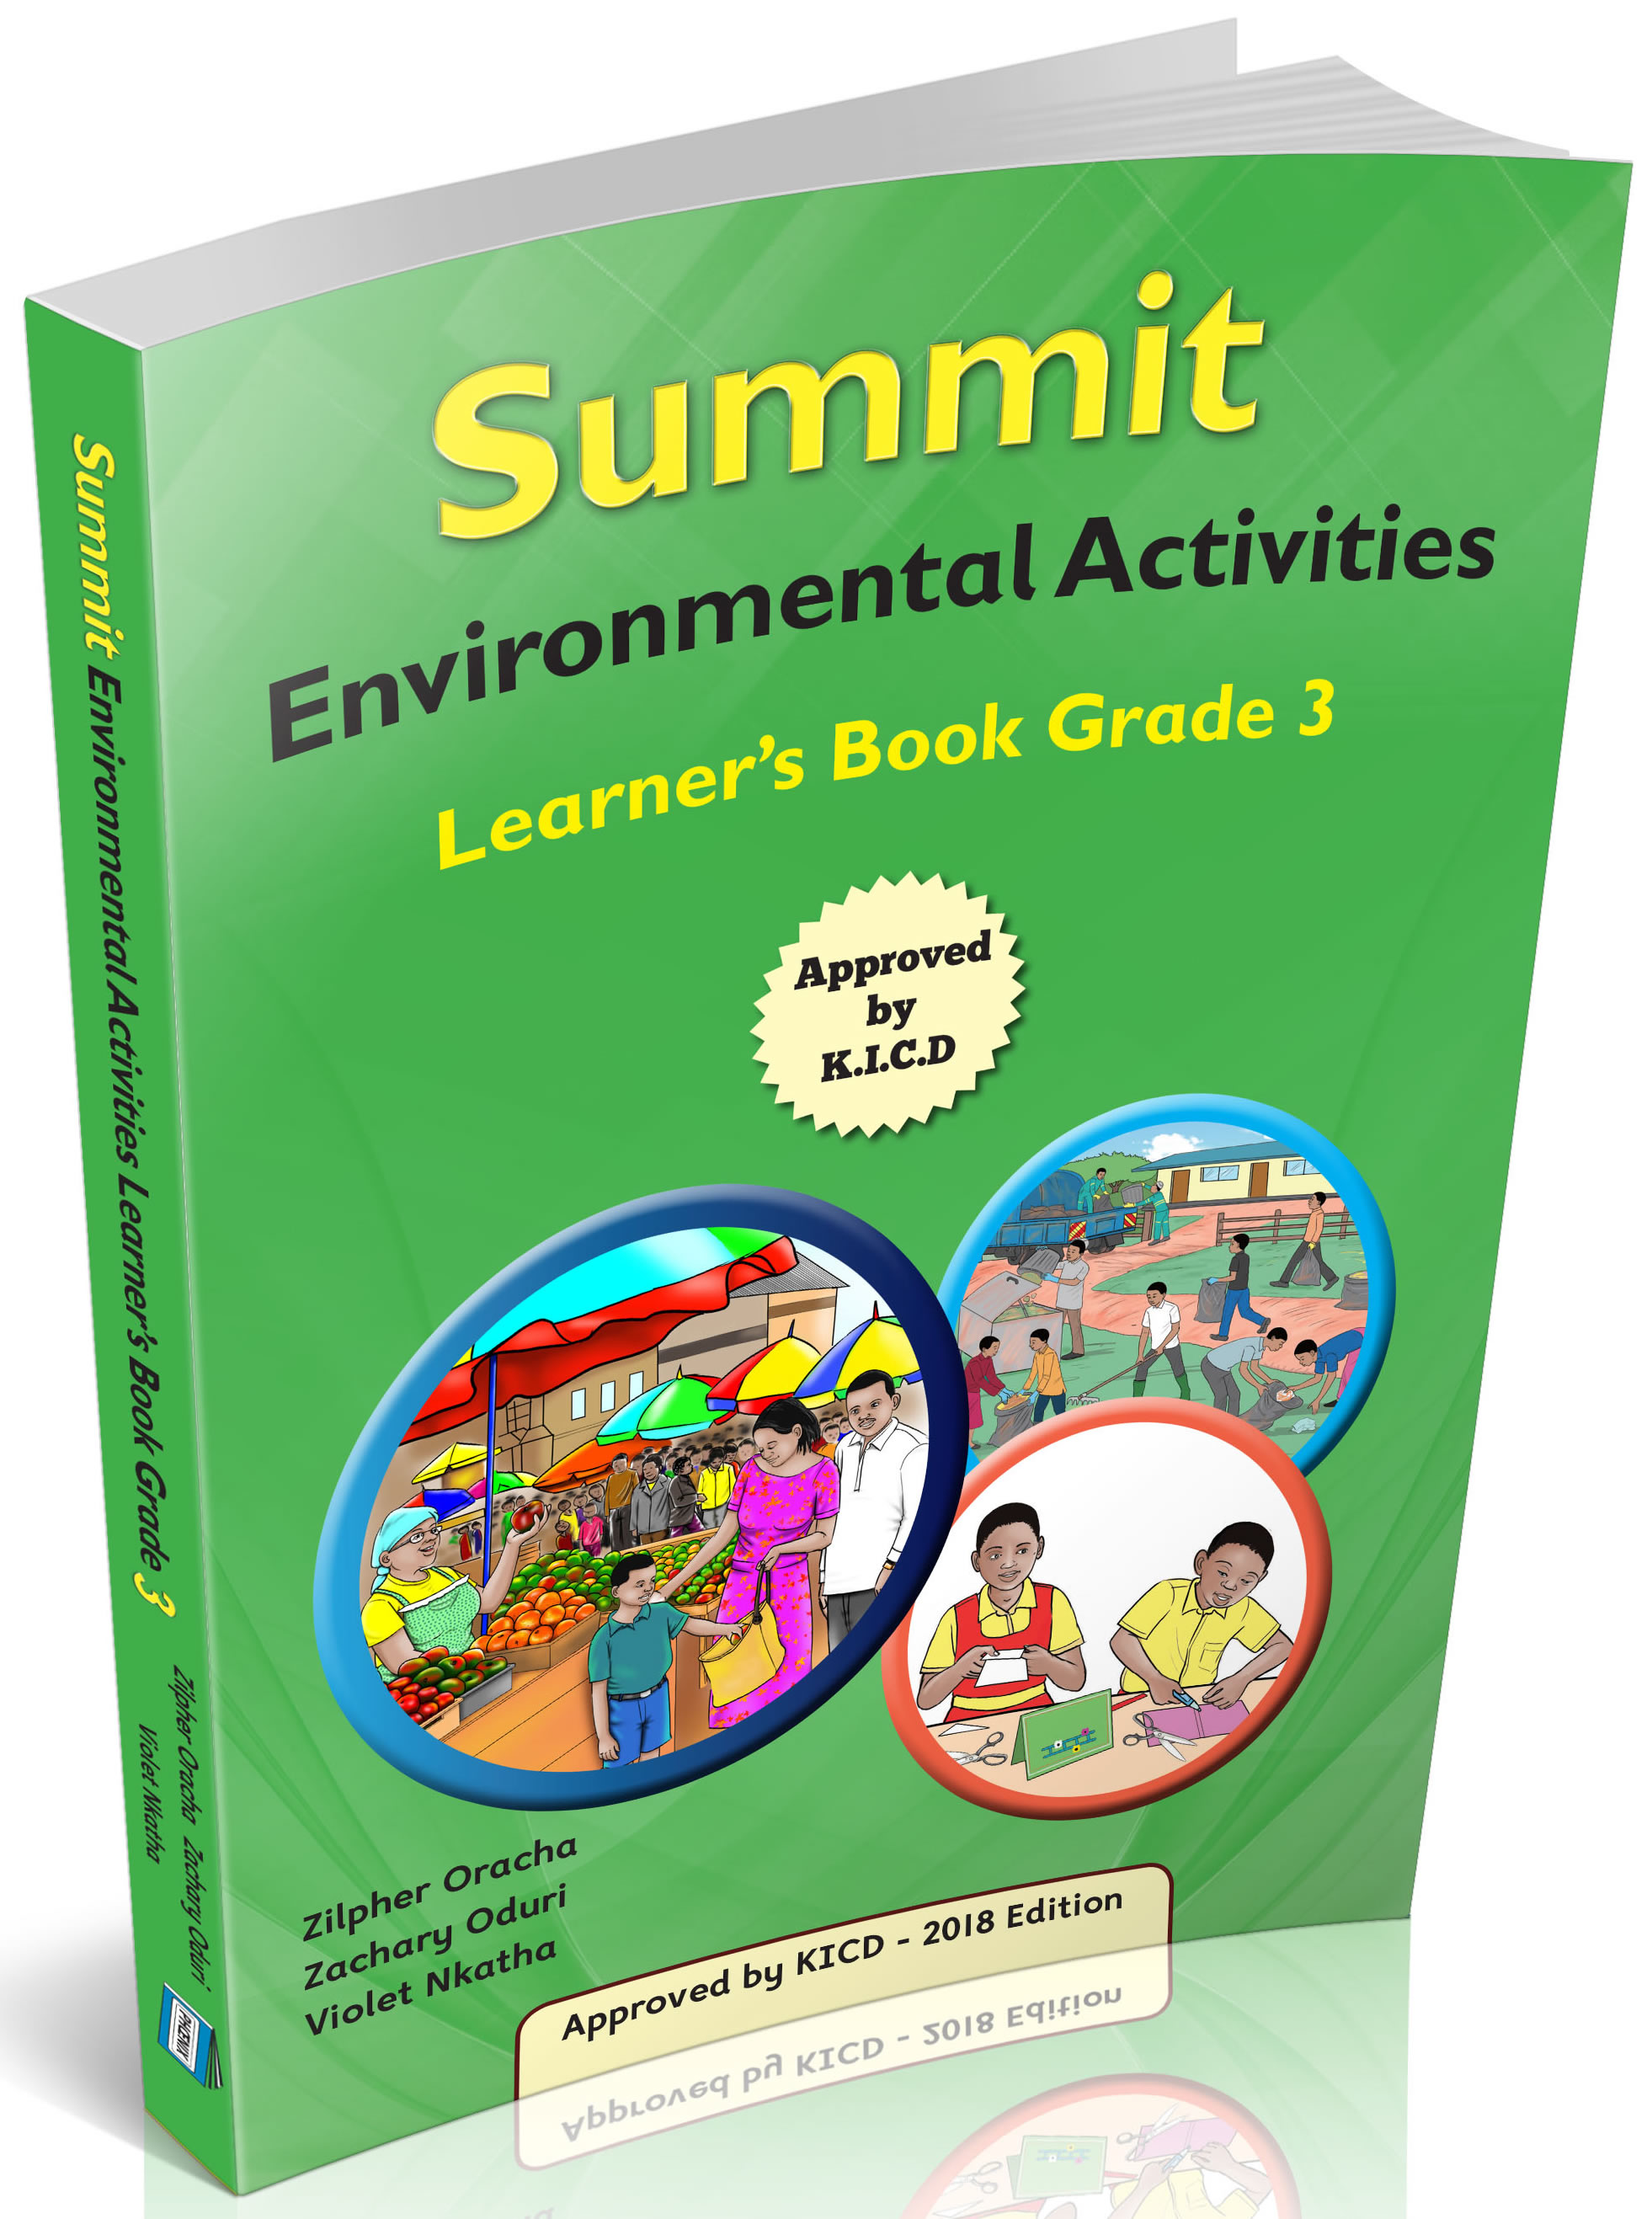 Summit Environmental Activities Grade 3